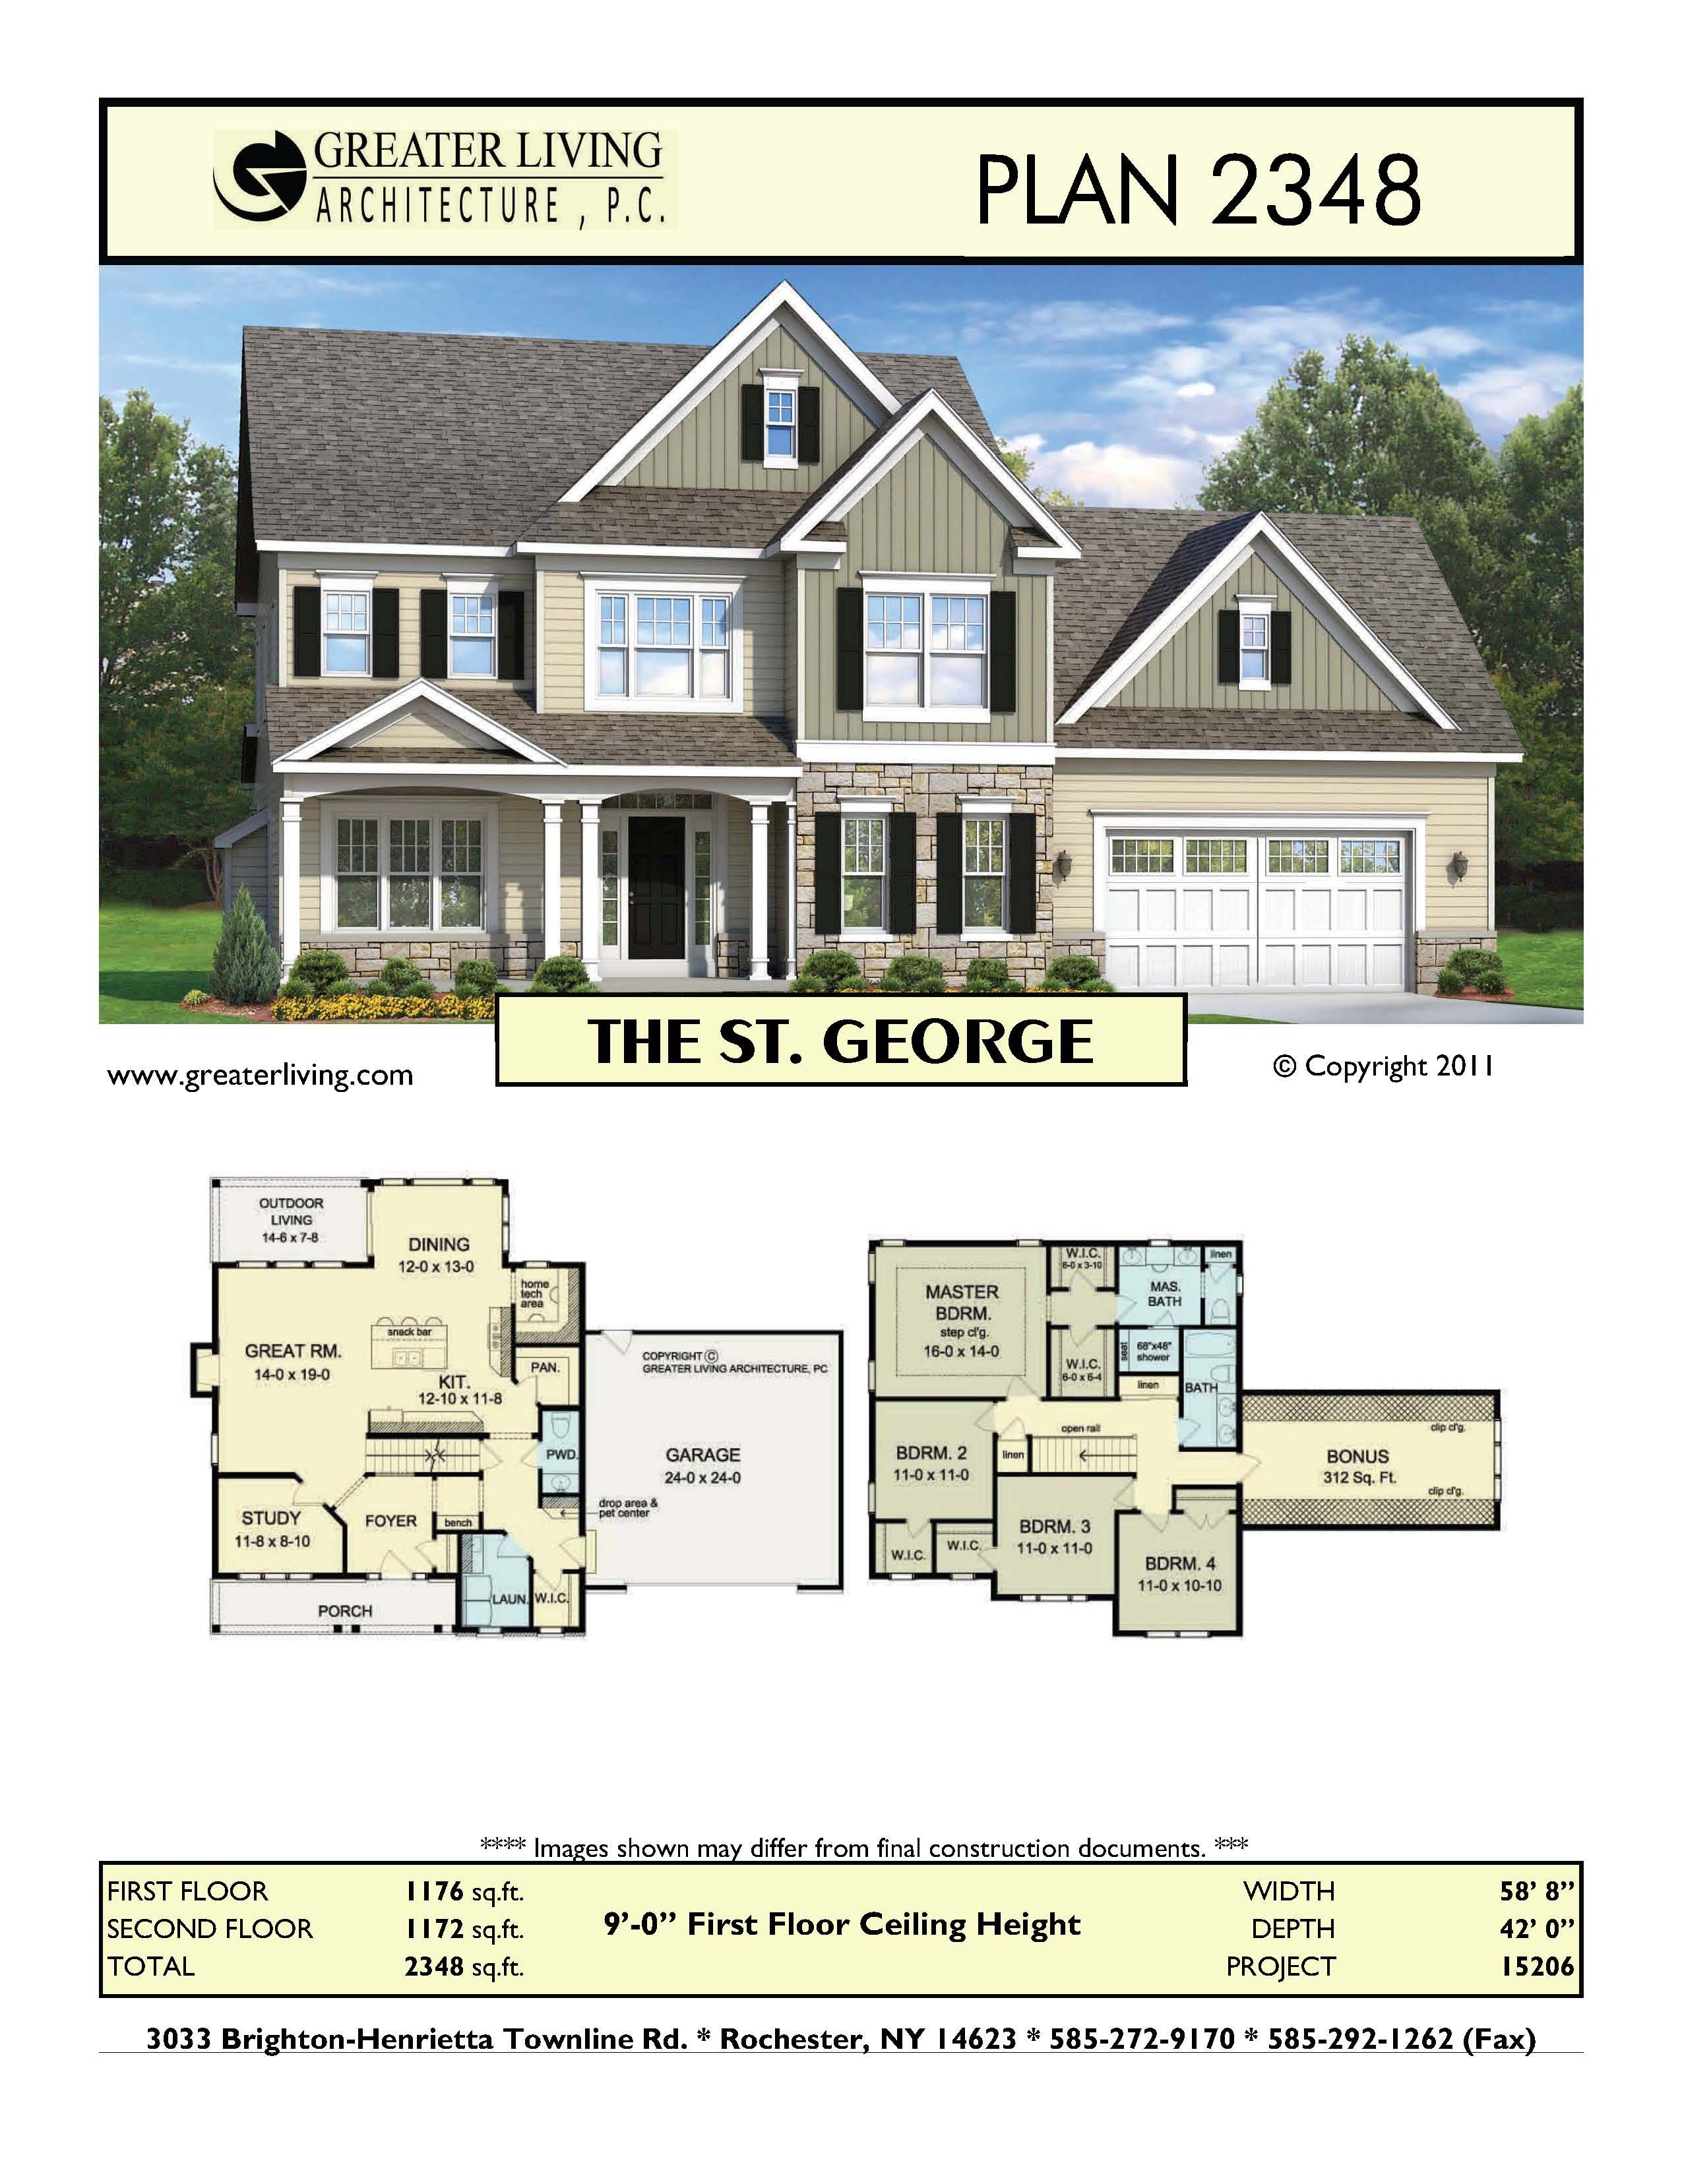 Small Two Story House Design: Plan 2348: THE ST. GEORGE